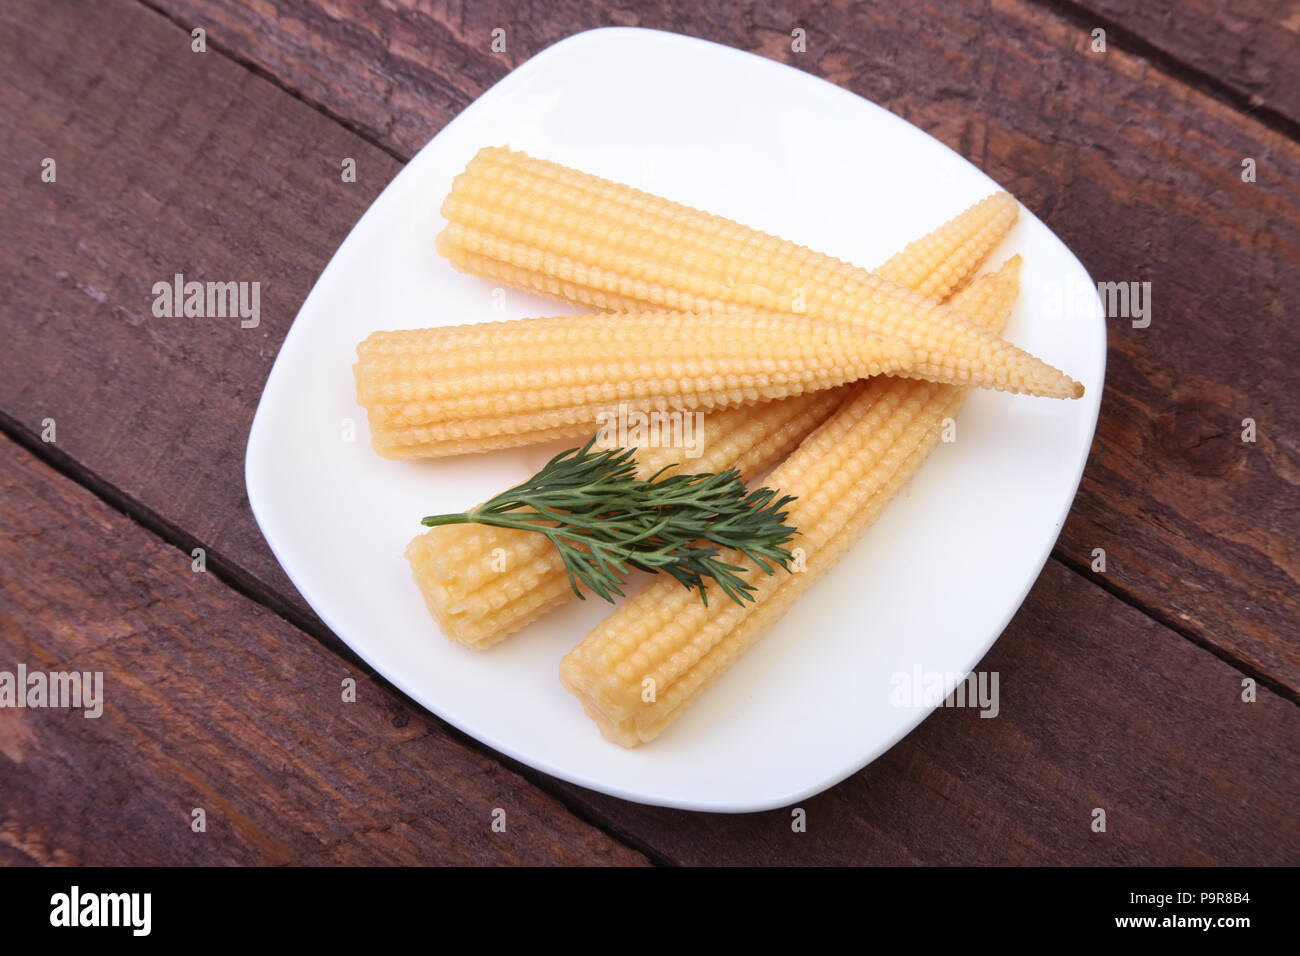 Mini Corn cob preserved on plate on wooden board. - Stock Image